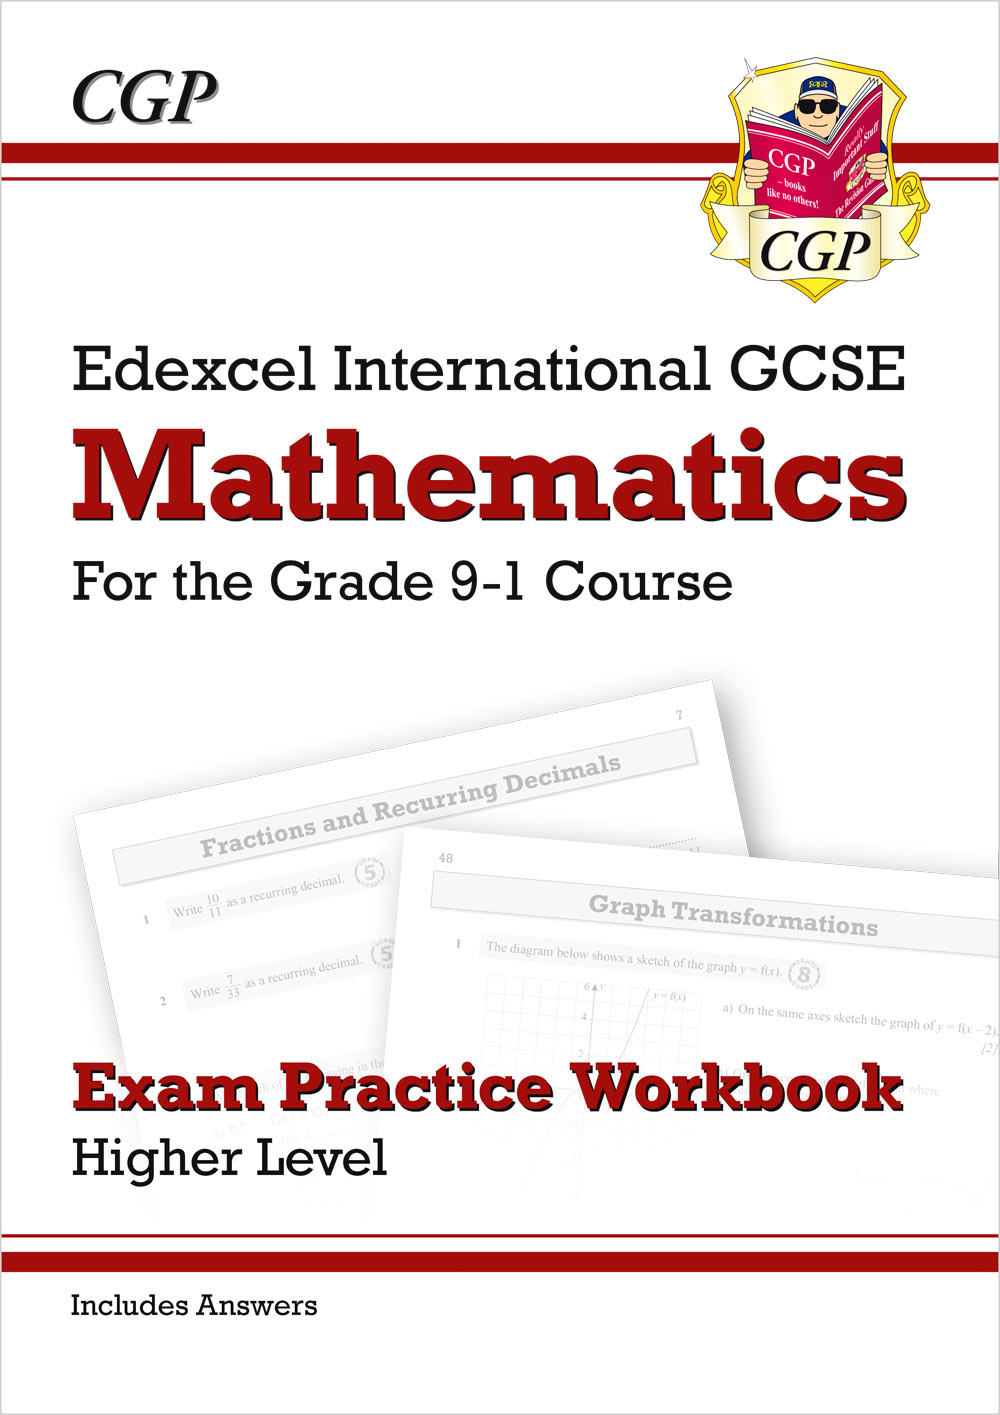 MEQI42 - Edexcel International GCSE Maths Exam Practice Workbook: Higher - Grade 9-1 (with Answers)